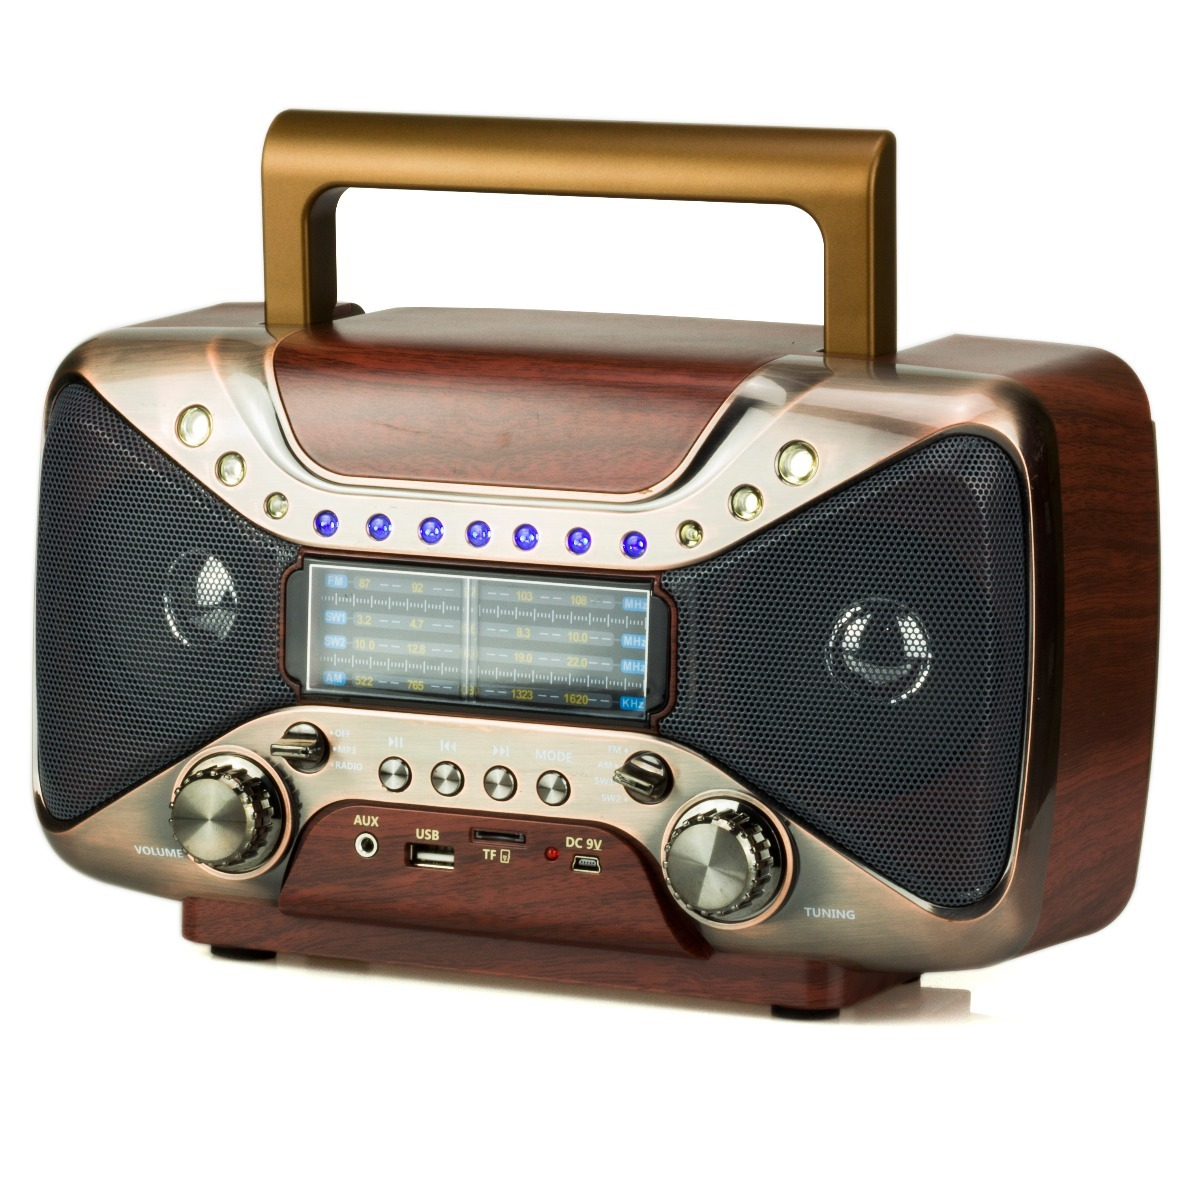 radio retro vintage bluetooth am fm usb antigo recarregavel r 179 55 em mercado livre. Black Bedroom Furniture Sets. Home Design Ideas